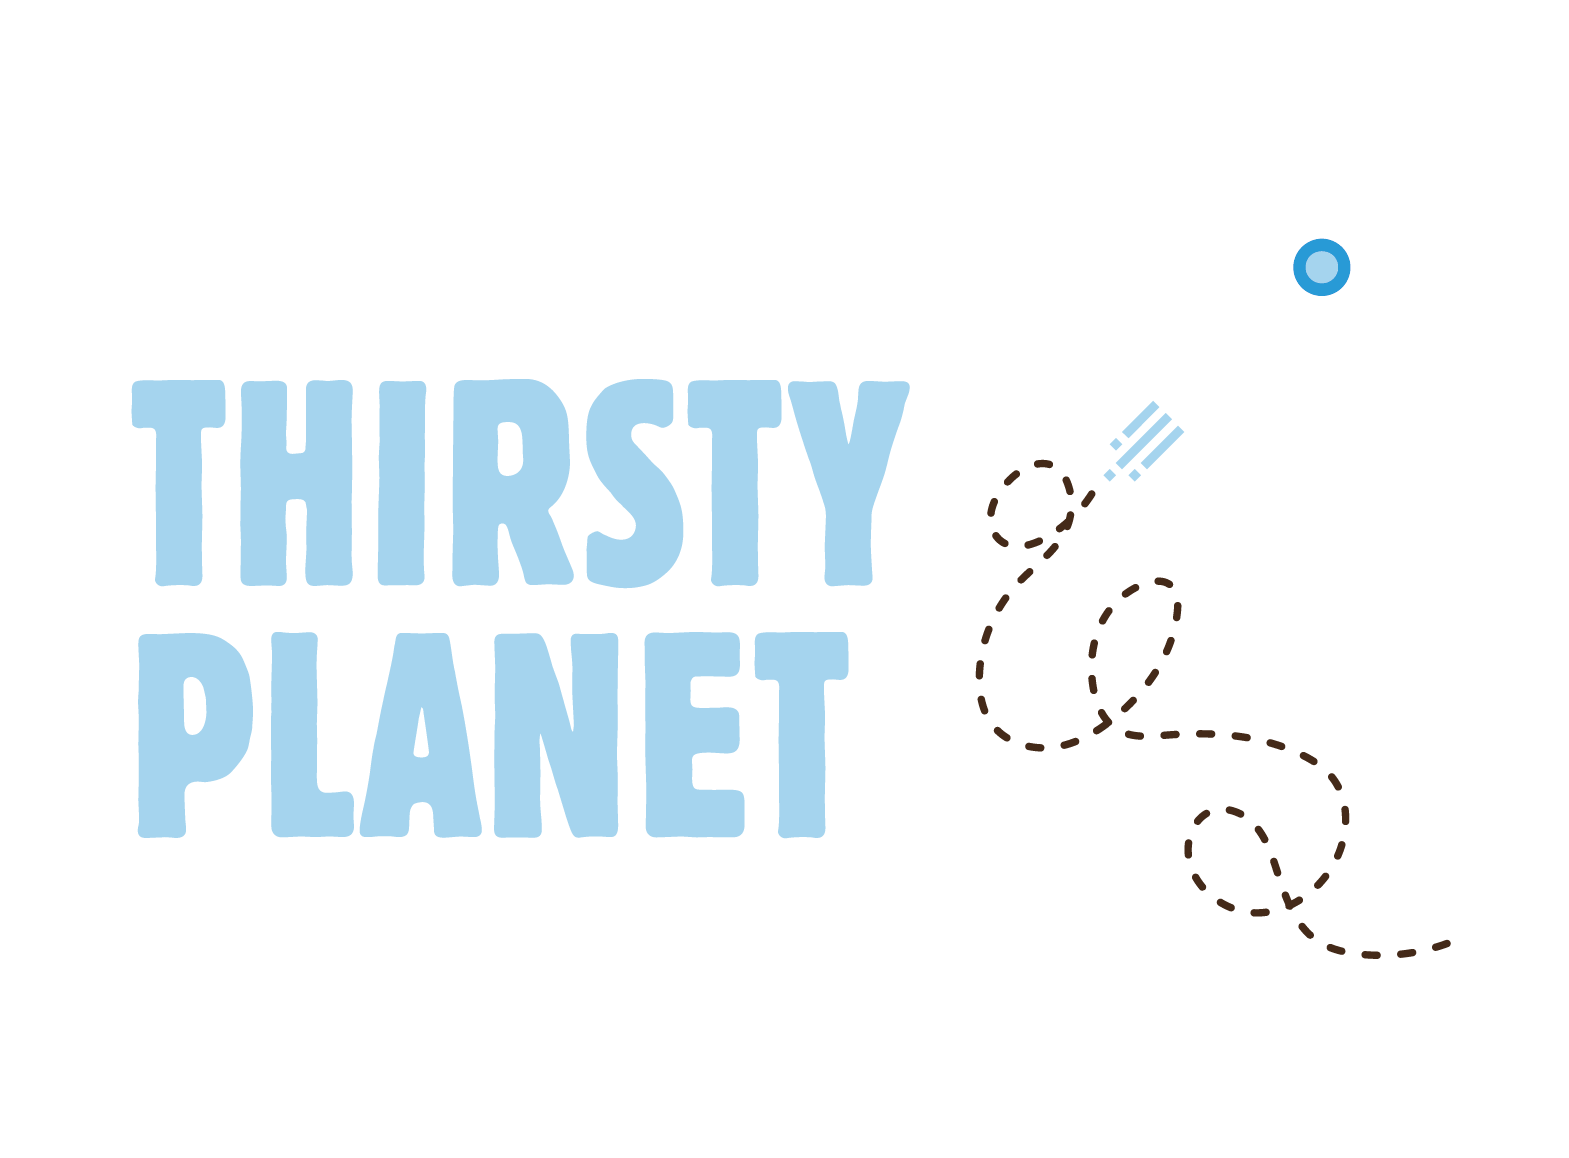 2007 Thirsty Planet was launched